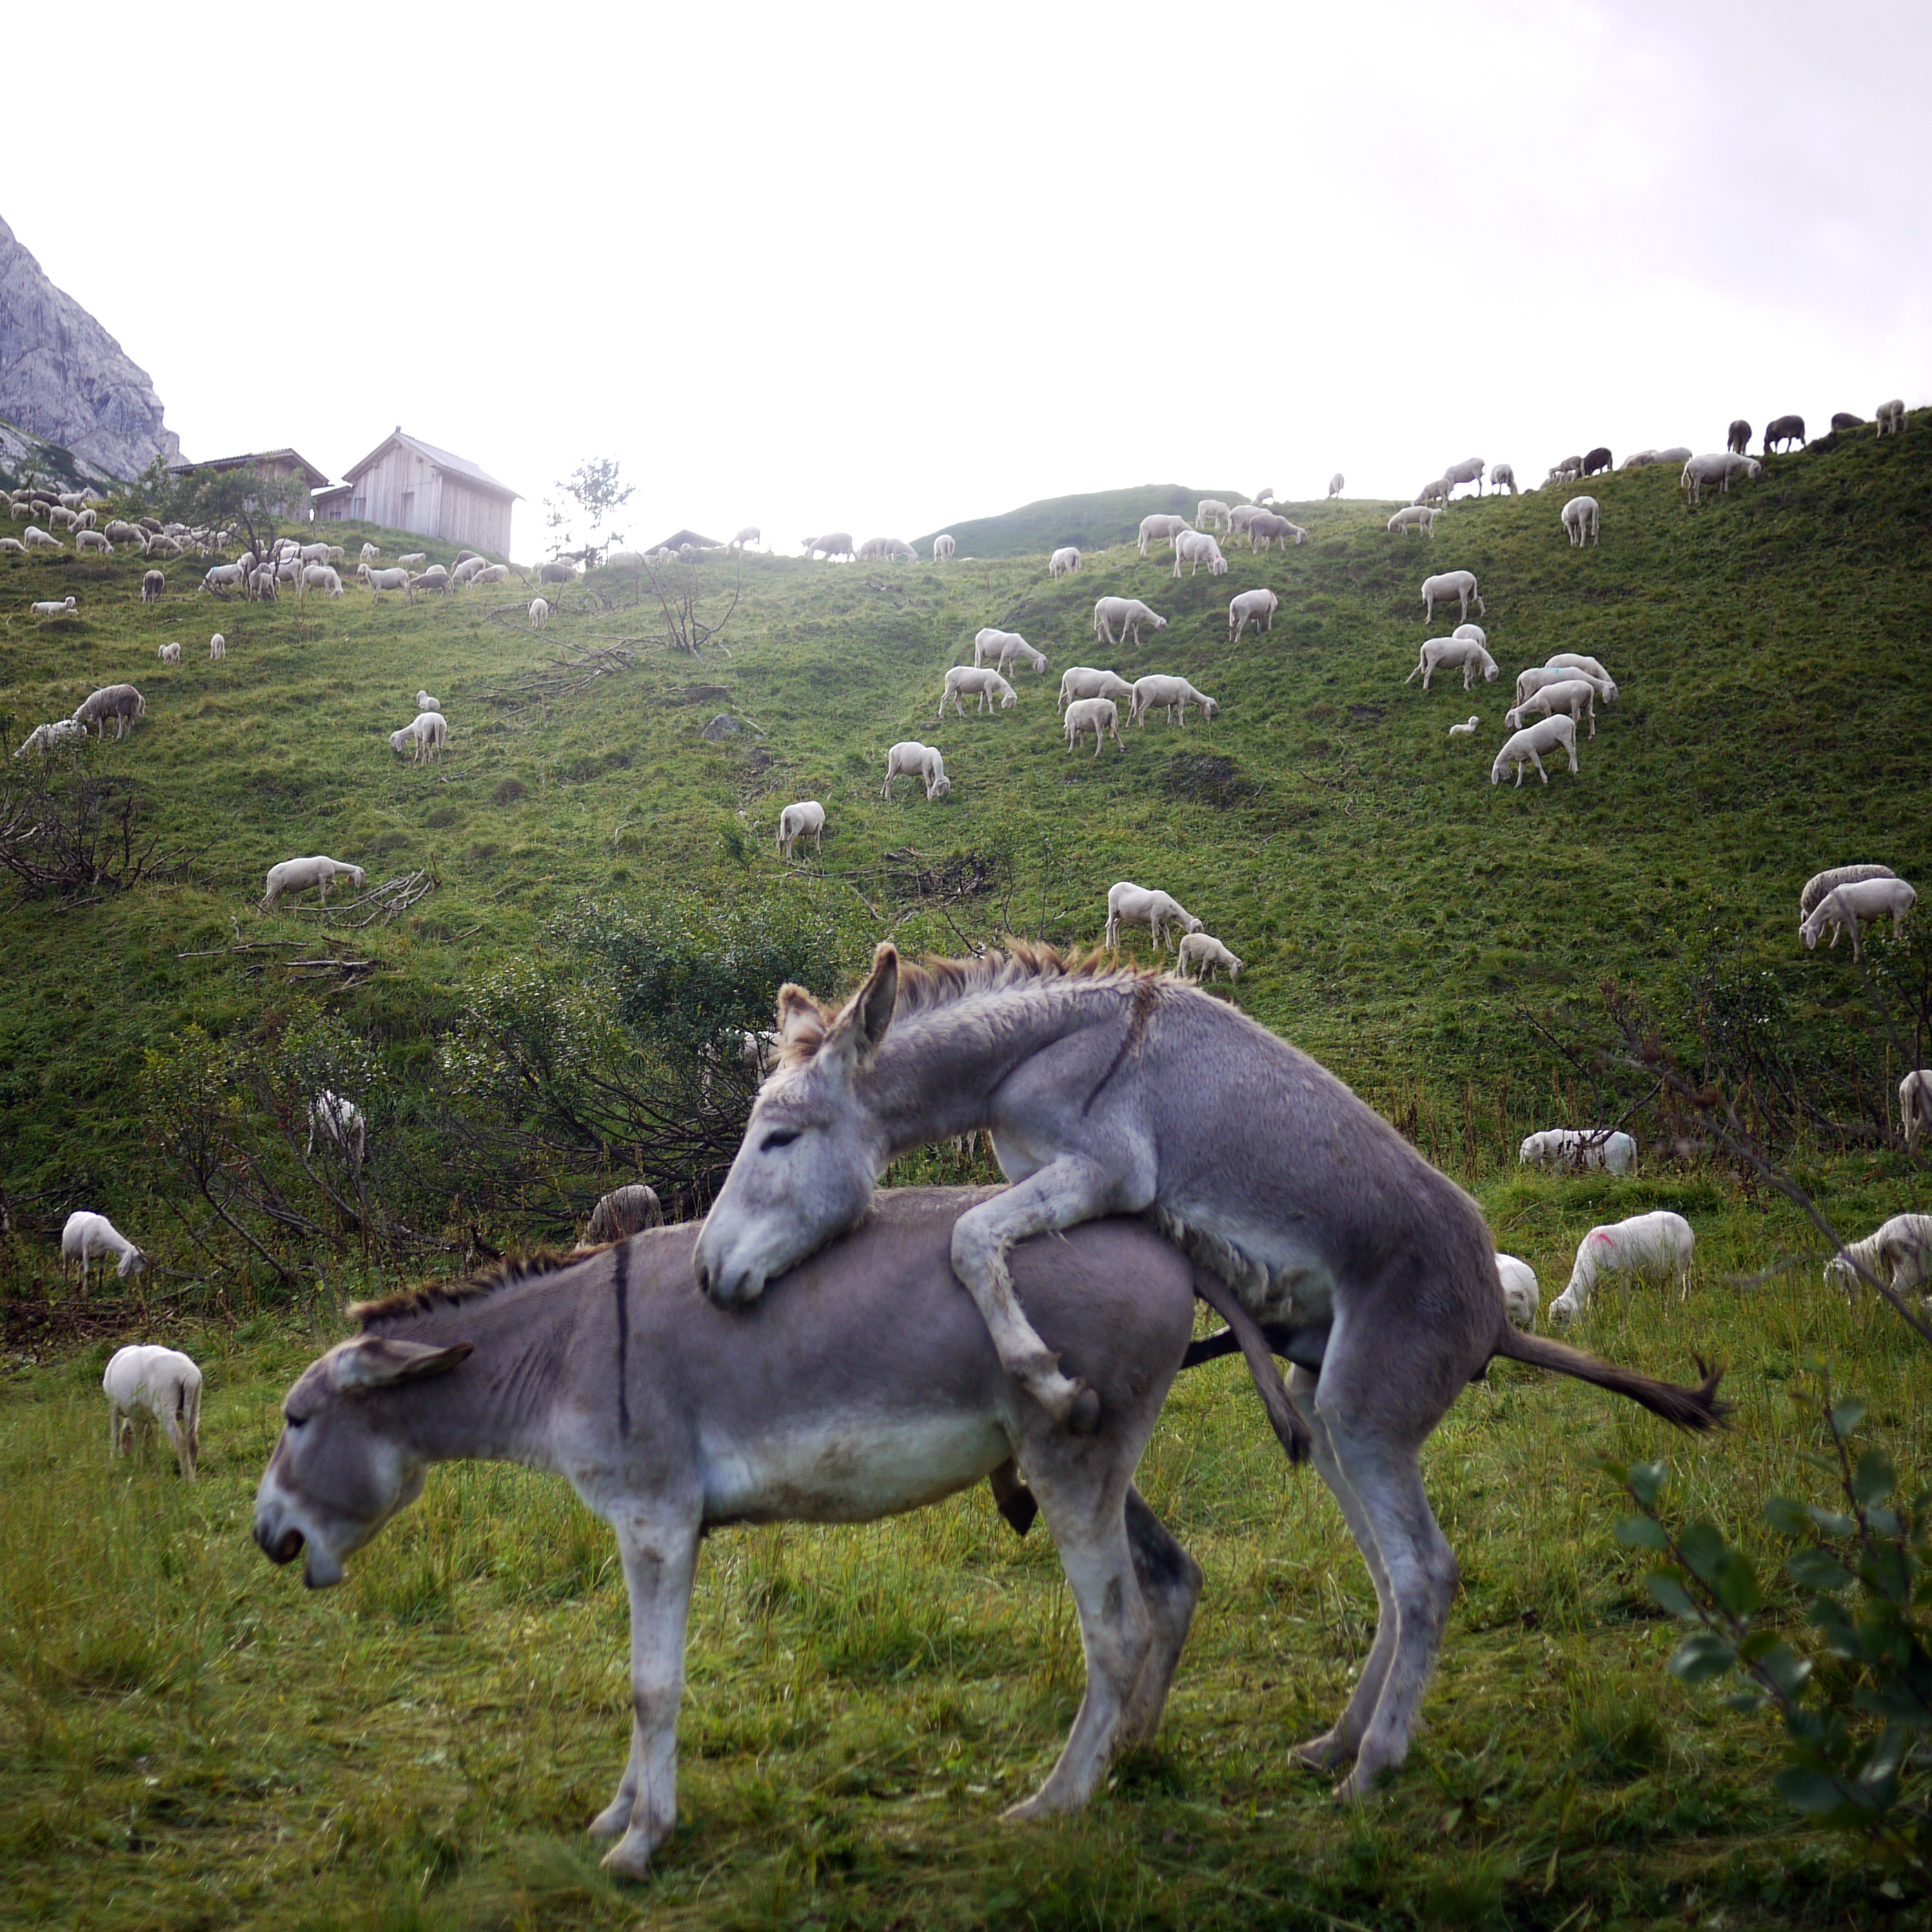 Donkeys mating images